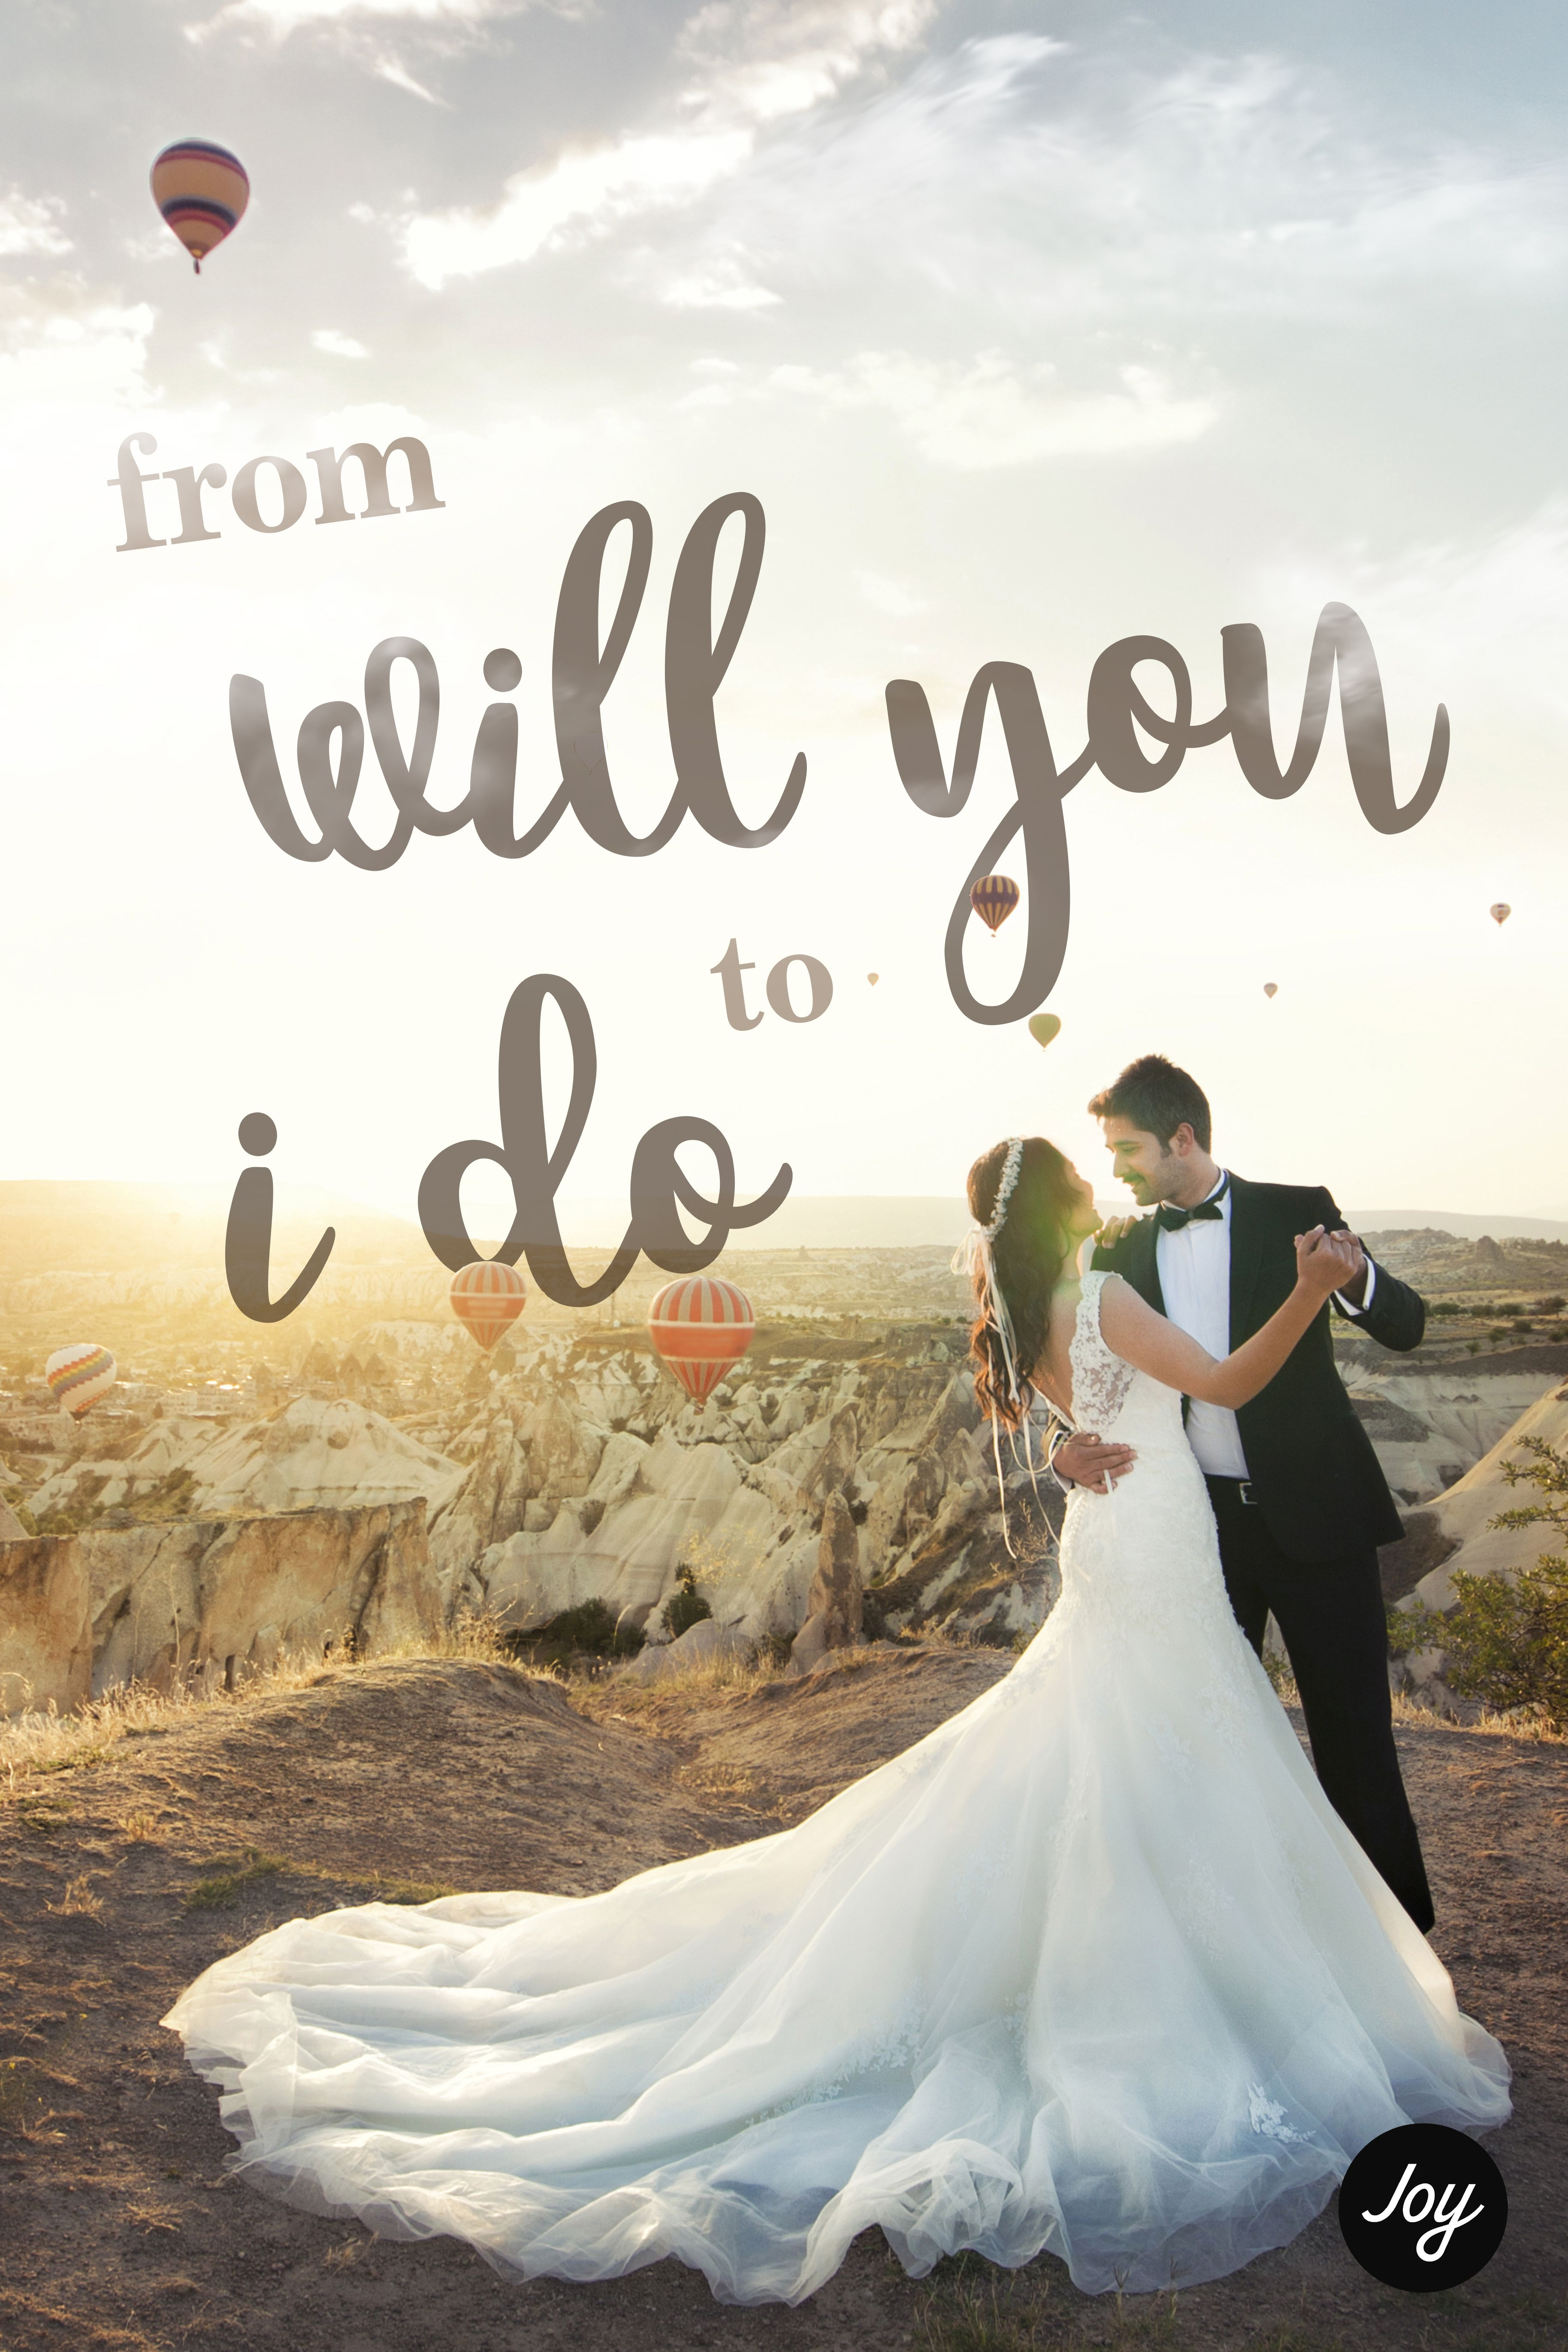 All You Need For Wedding Planning In One Place Use Joy To Manage RSVPs